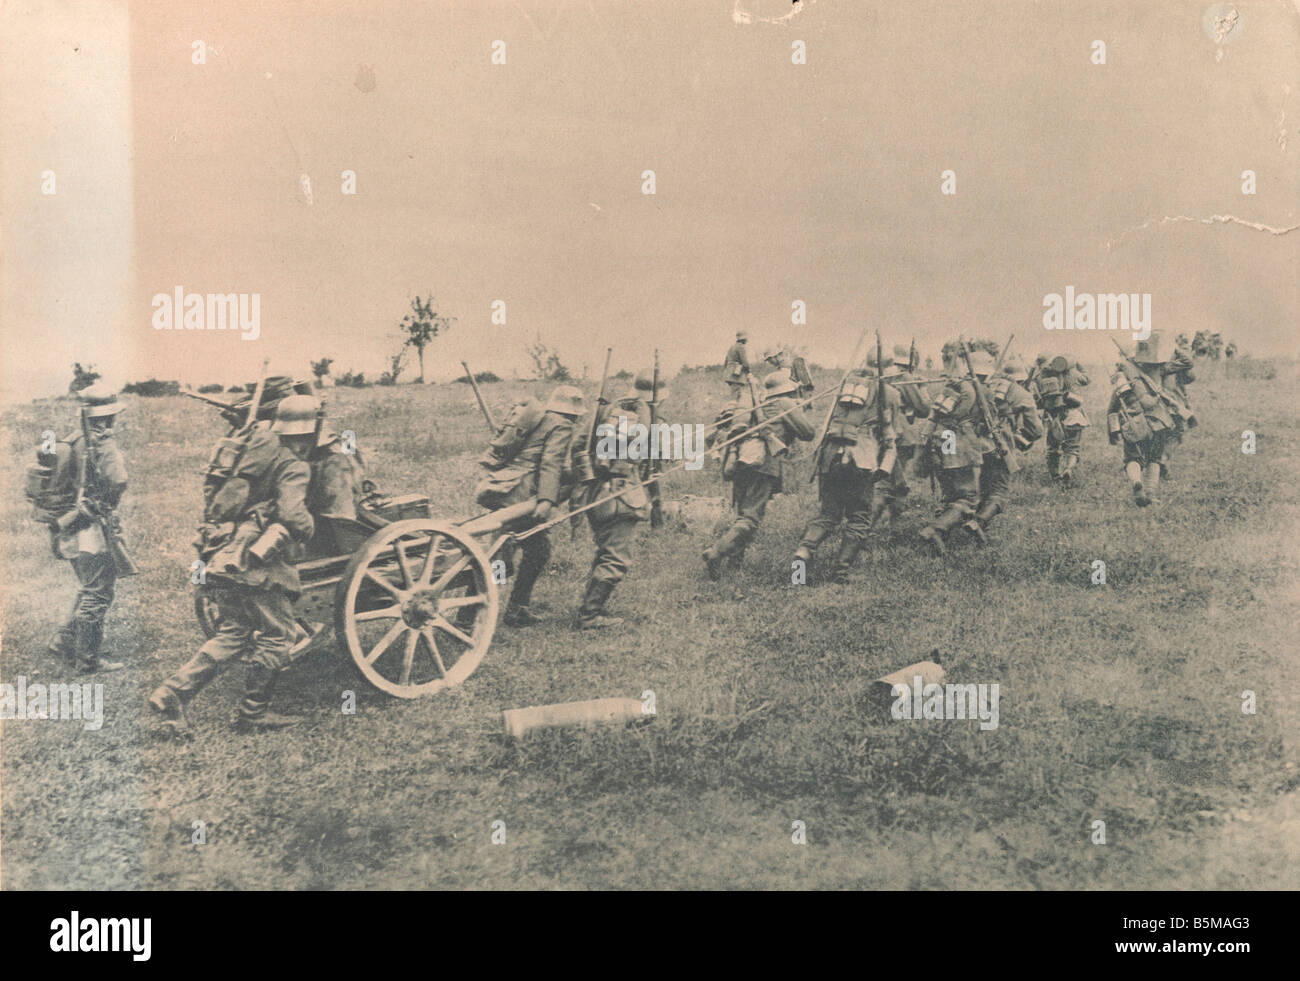 2 G55 W1 1918 33 Battles in the Champagne Photo History First World War 1914 18 Western front Battles in the Champagne - Stock Image